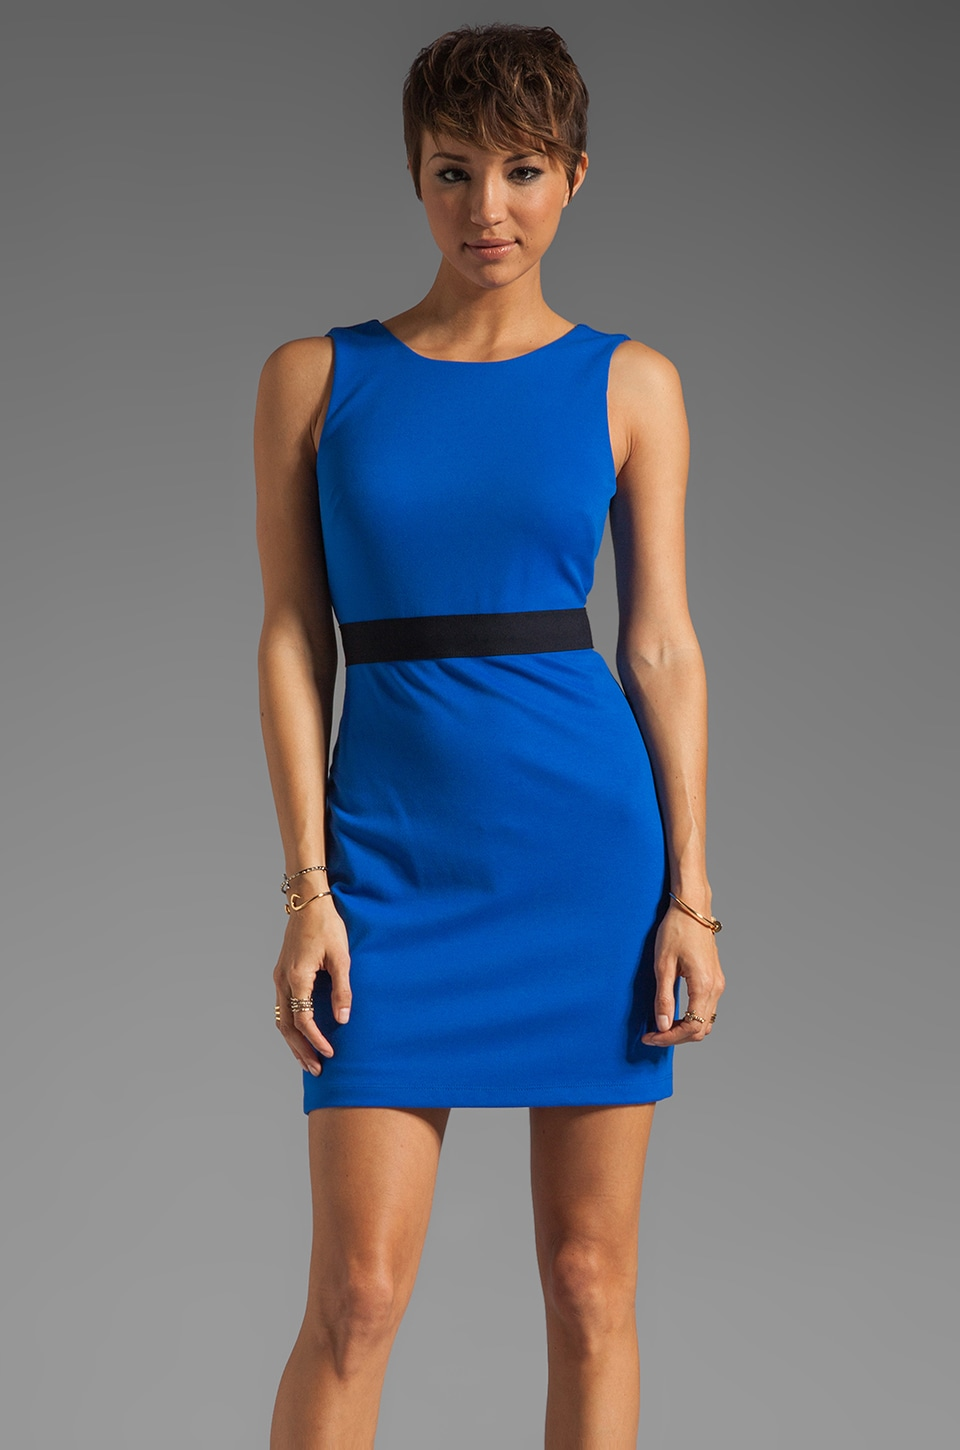 Bailey 44 Finish Line Dress in Blue/Navy